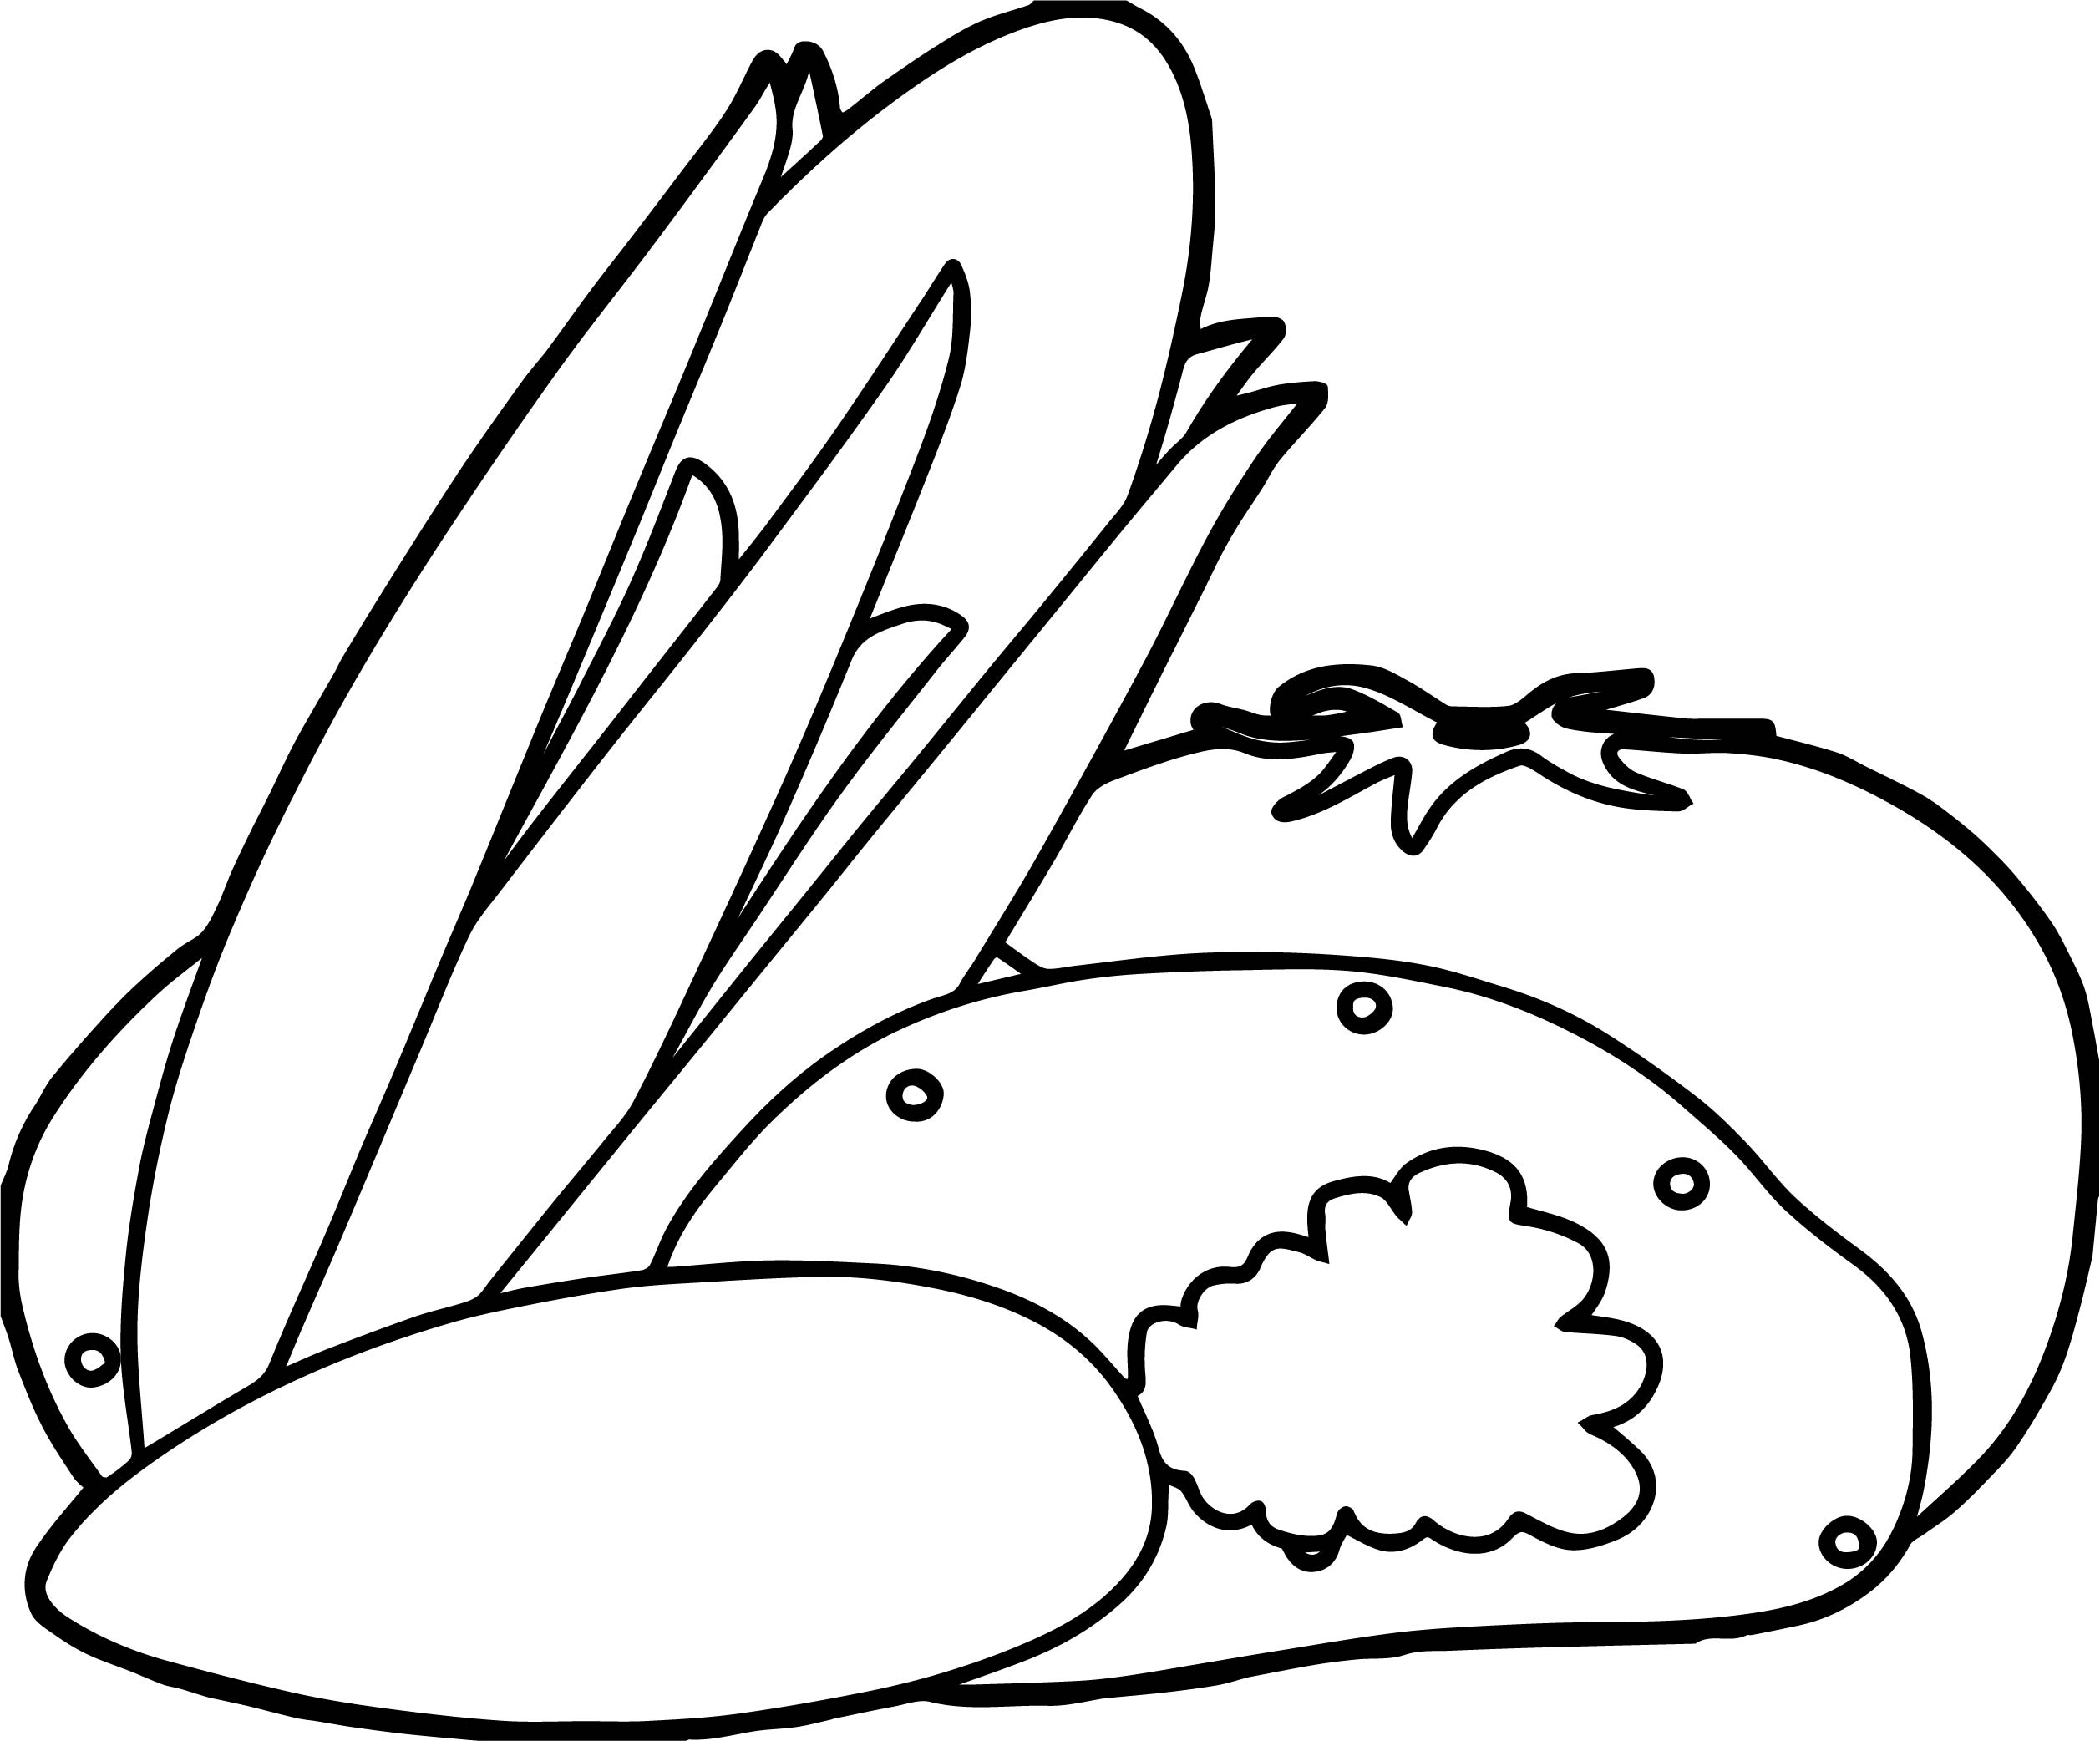 Multiple Vegetable Coloring Page